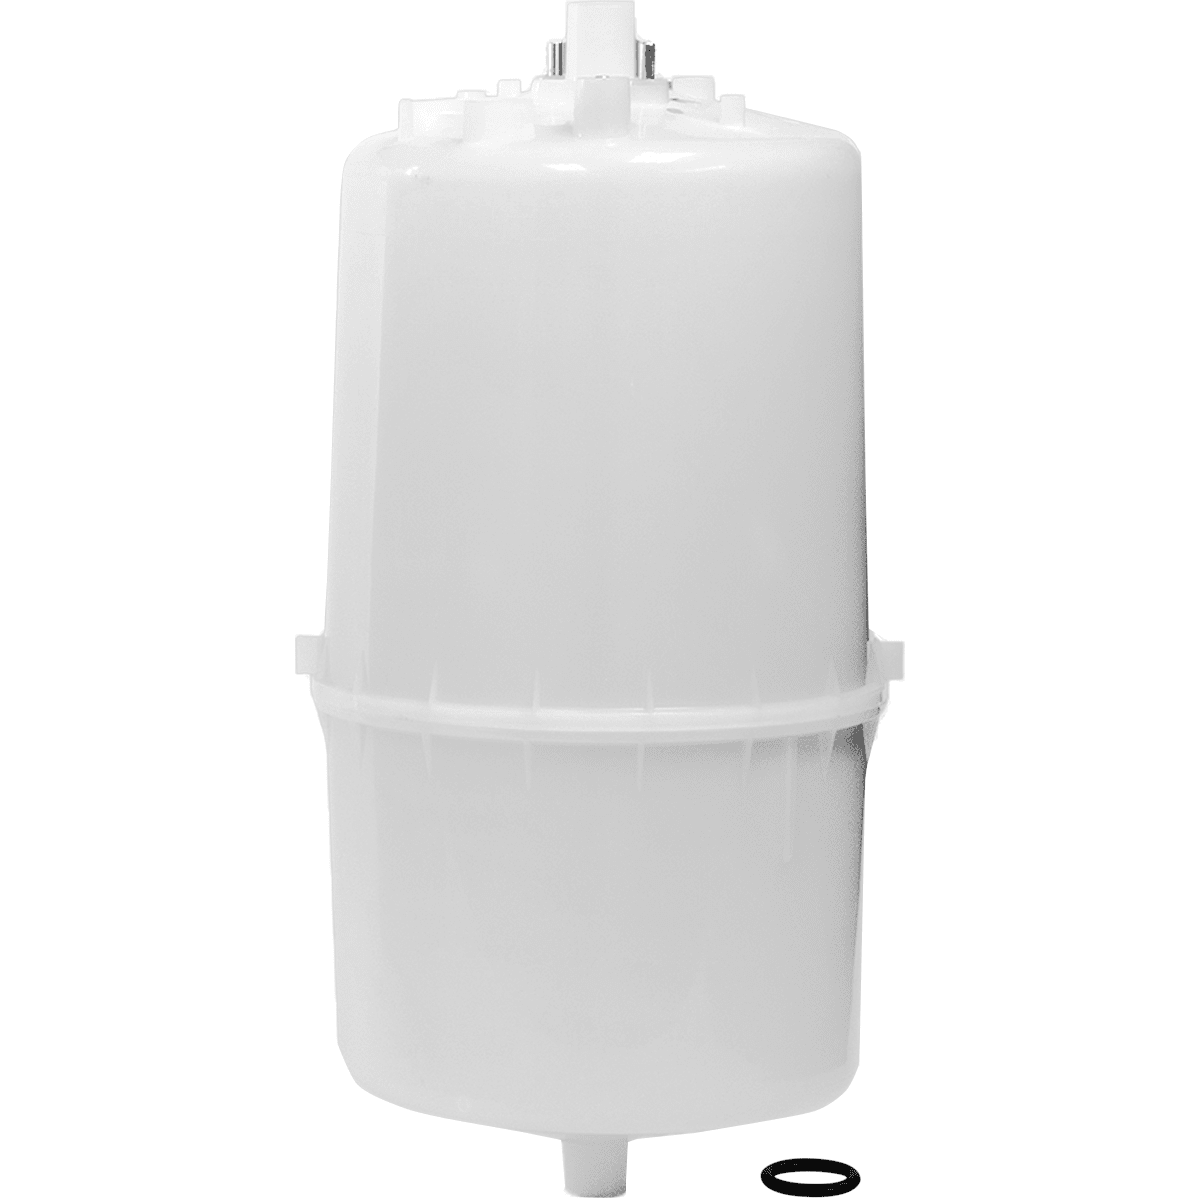 Aprilaire 303a Steam Humidifier Cylinder (fits Nortec® 303)